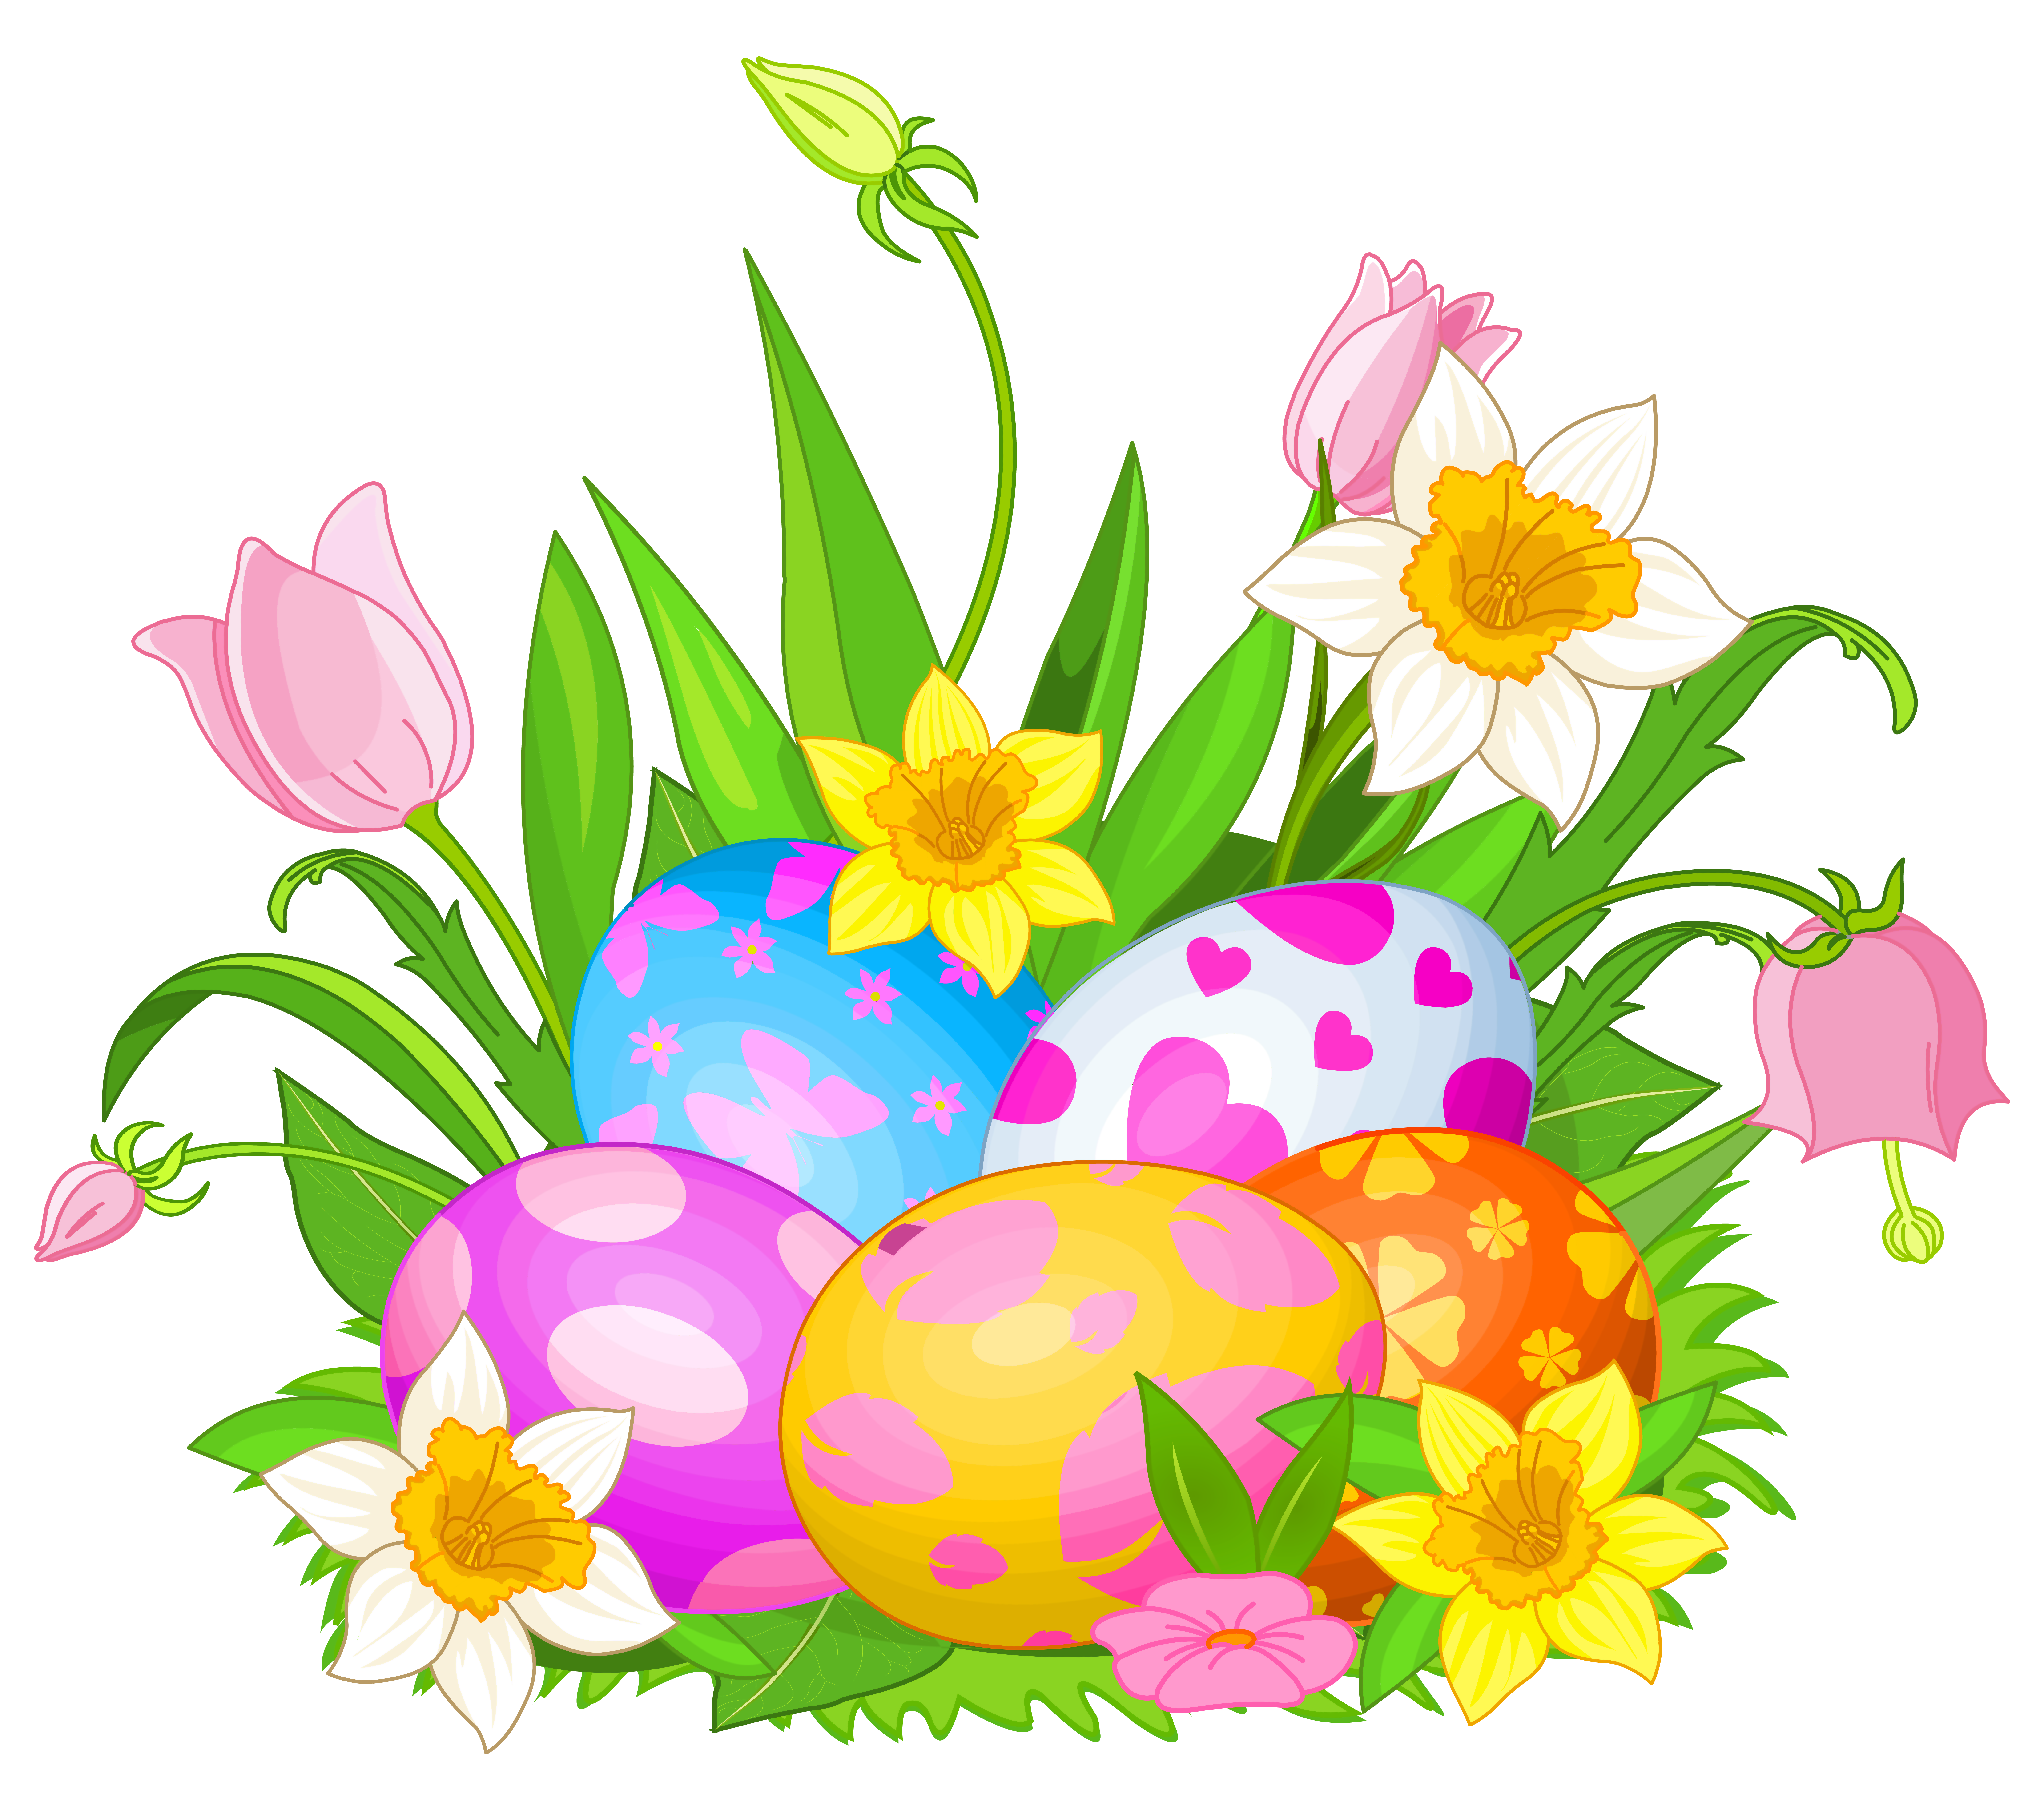 Stick flower clipart transparent download Easter Eggs and Flowers PNG Clipart Picture transparent download